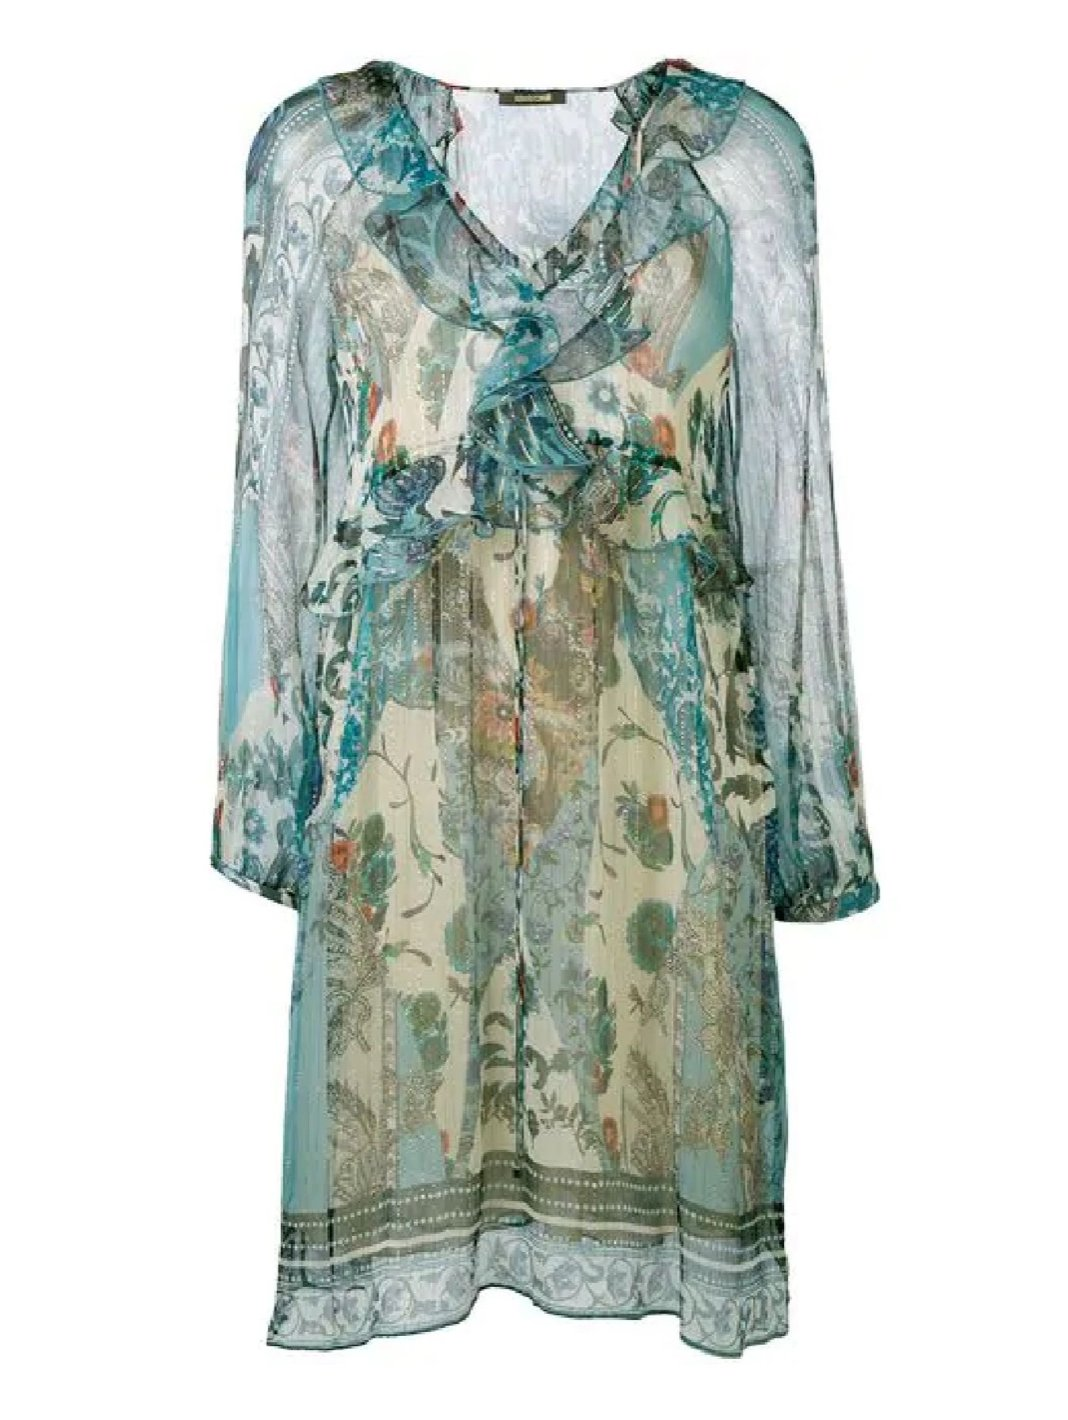 Potpourri Print Silk Dress - The Bobby Boga